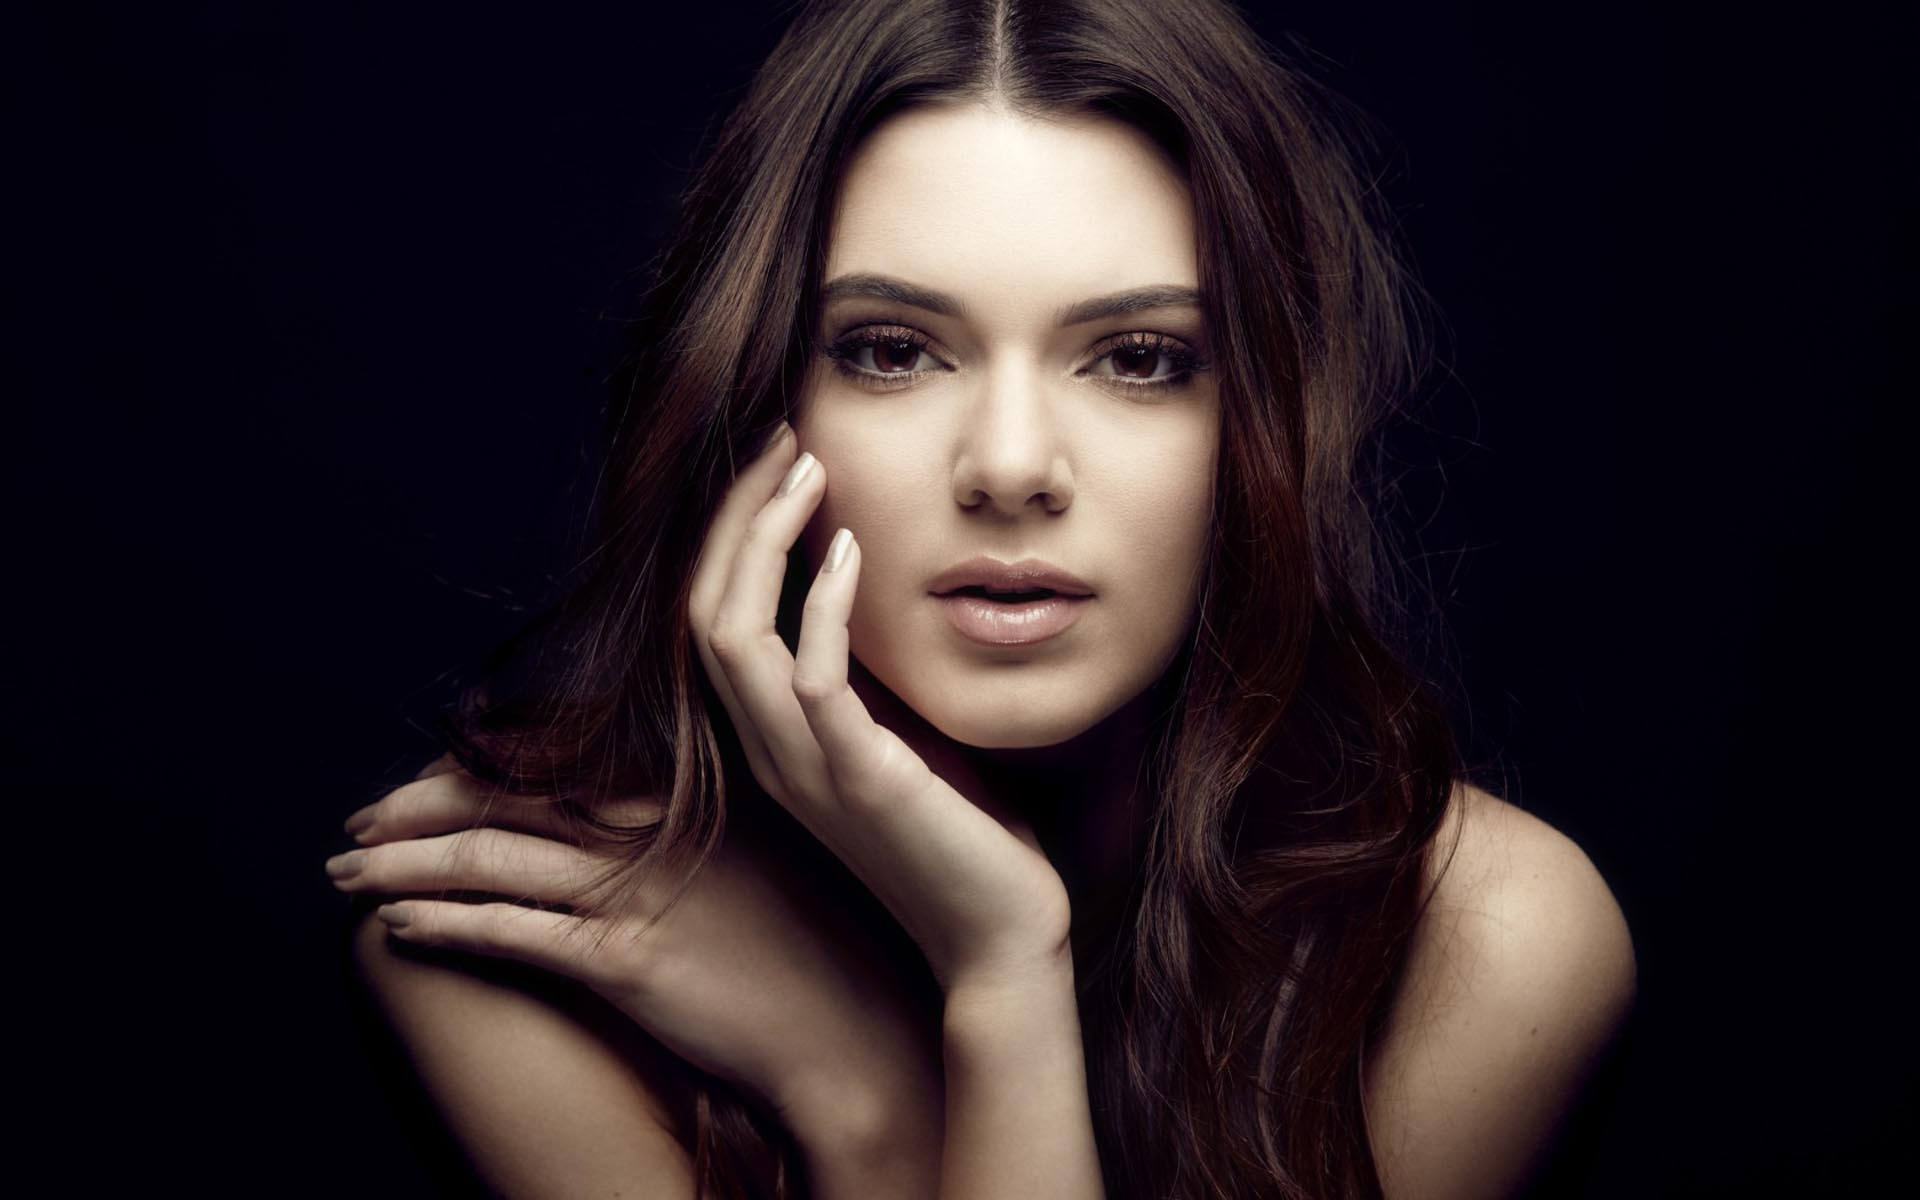 Kendall Jenner HD Wallpapers Pictures Images 1920x1200